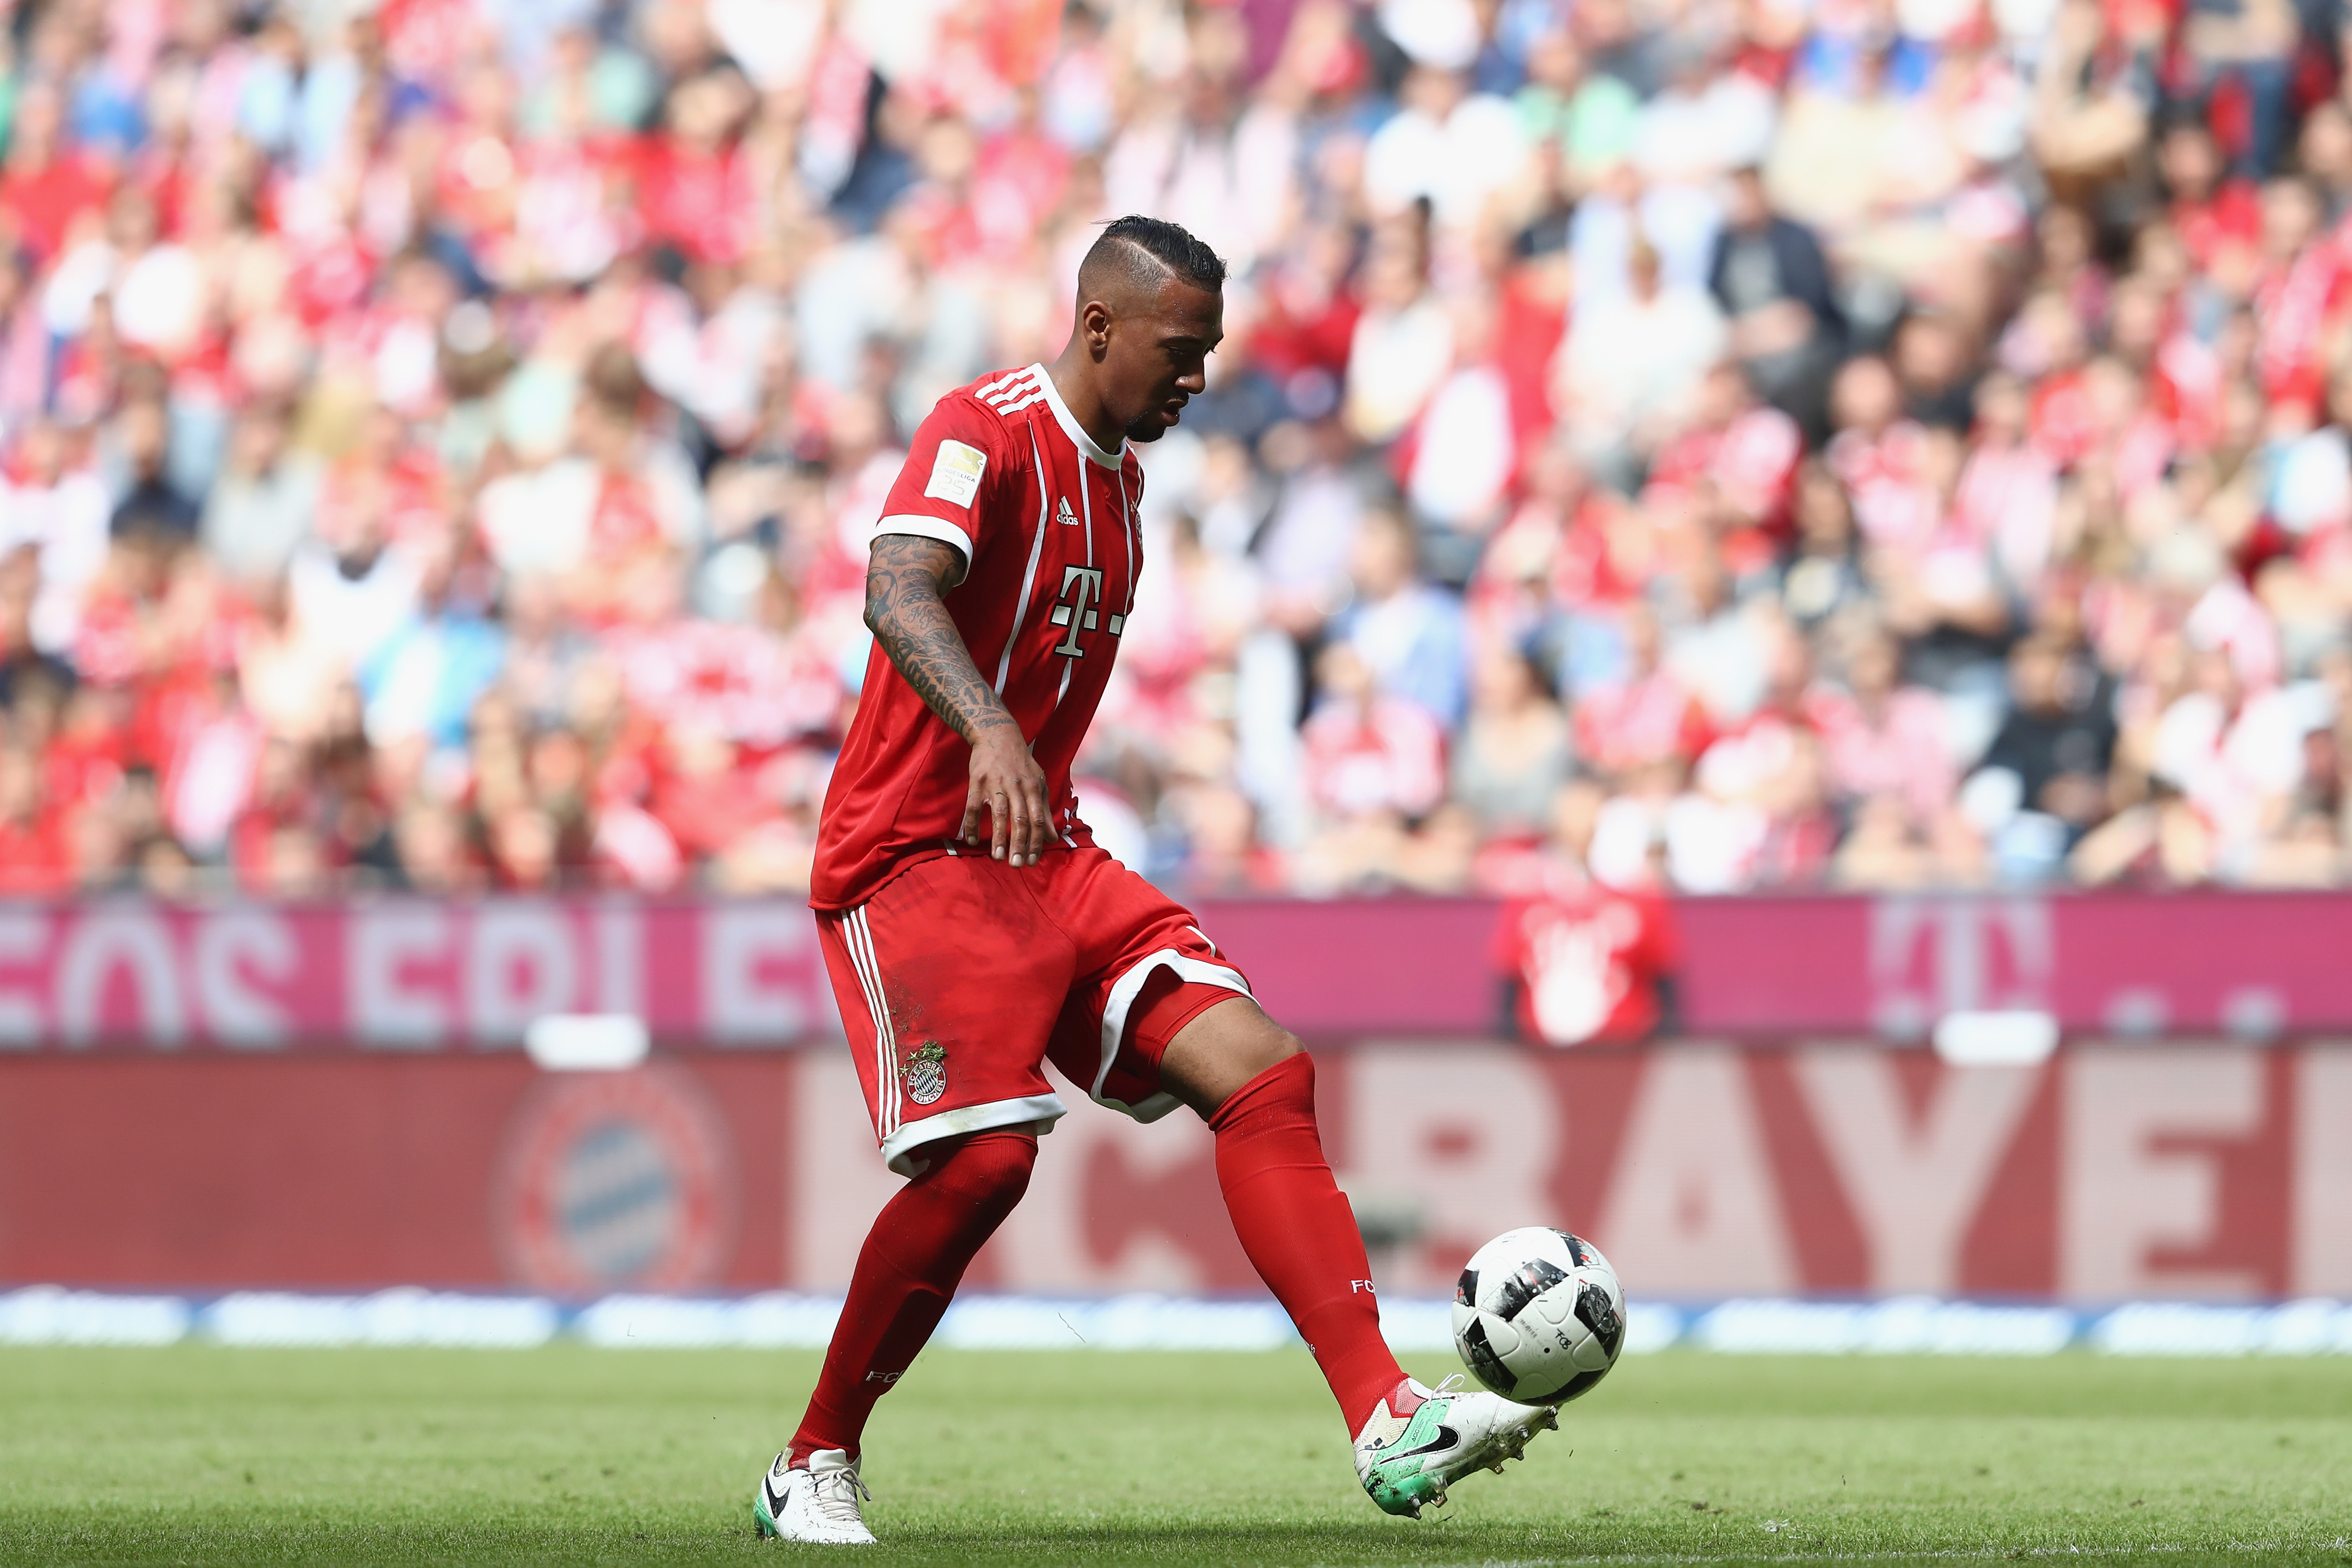 MUNICH, GERMANY - MAY 20: Jerome Boateng of Bayern Muenchen runs with the ball during the Bundesliga match between Bayern Muenchen and SC Freiburg at Allianz Arena on May 20, 2017 in Munich, Germany. (Photo by Alexander Hassenstein/Bongarts/Getty Images)